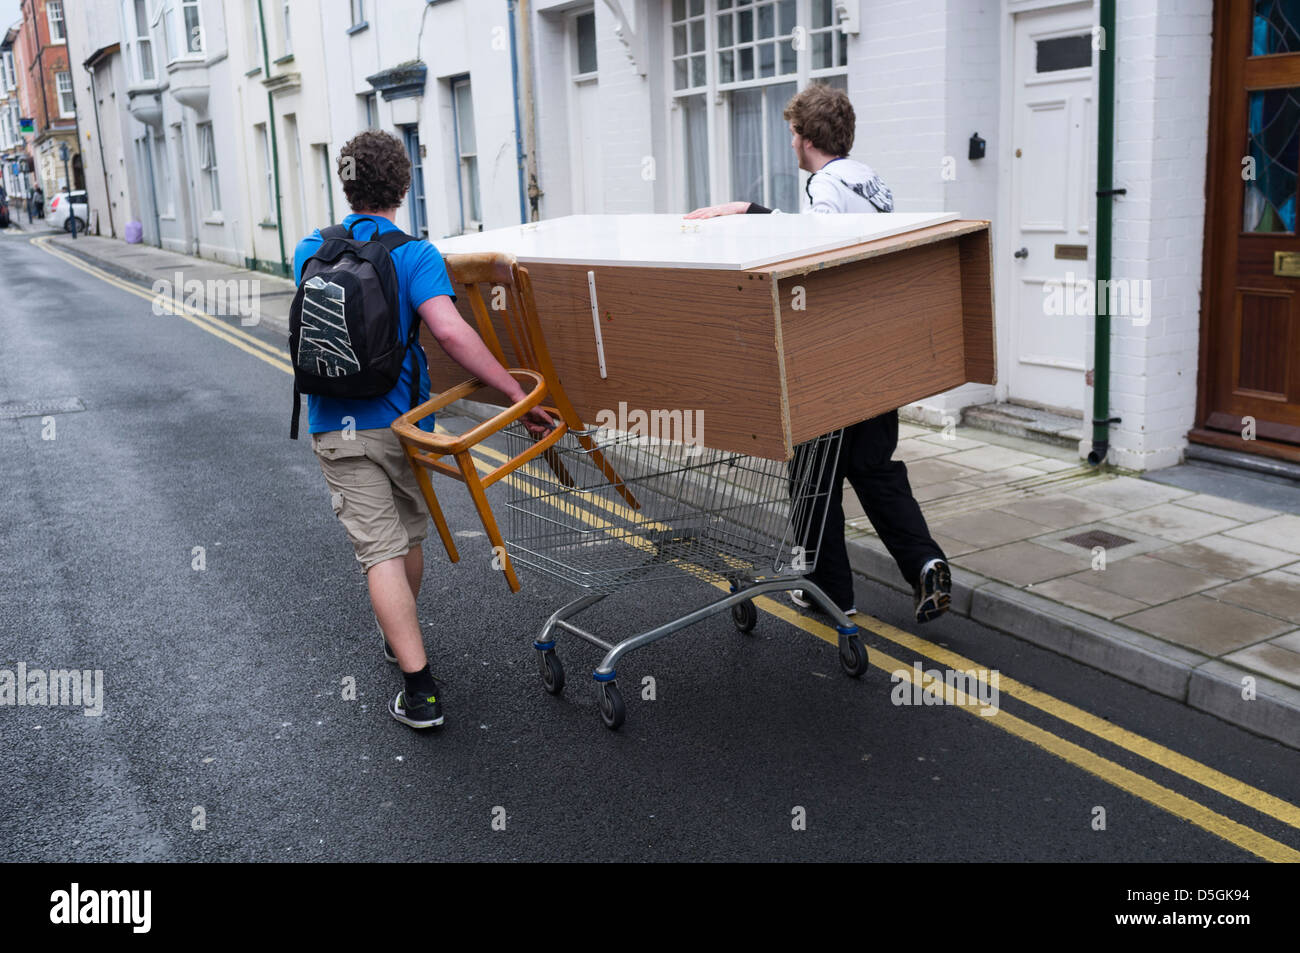 Two students people men moving furniture wheeling a wardrobe on a shopping trolley aberystwyth wales uk Stock Photo